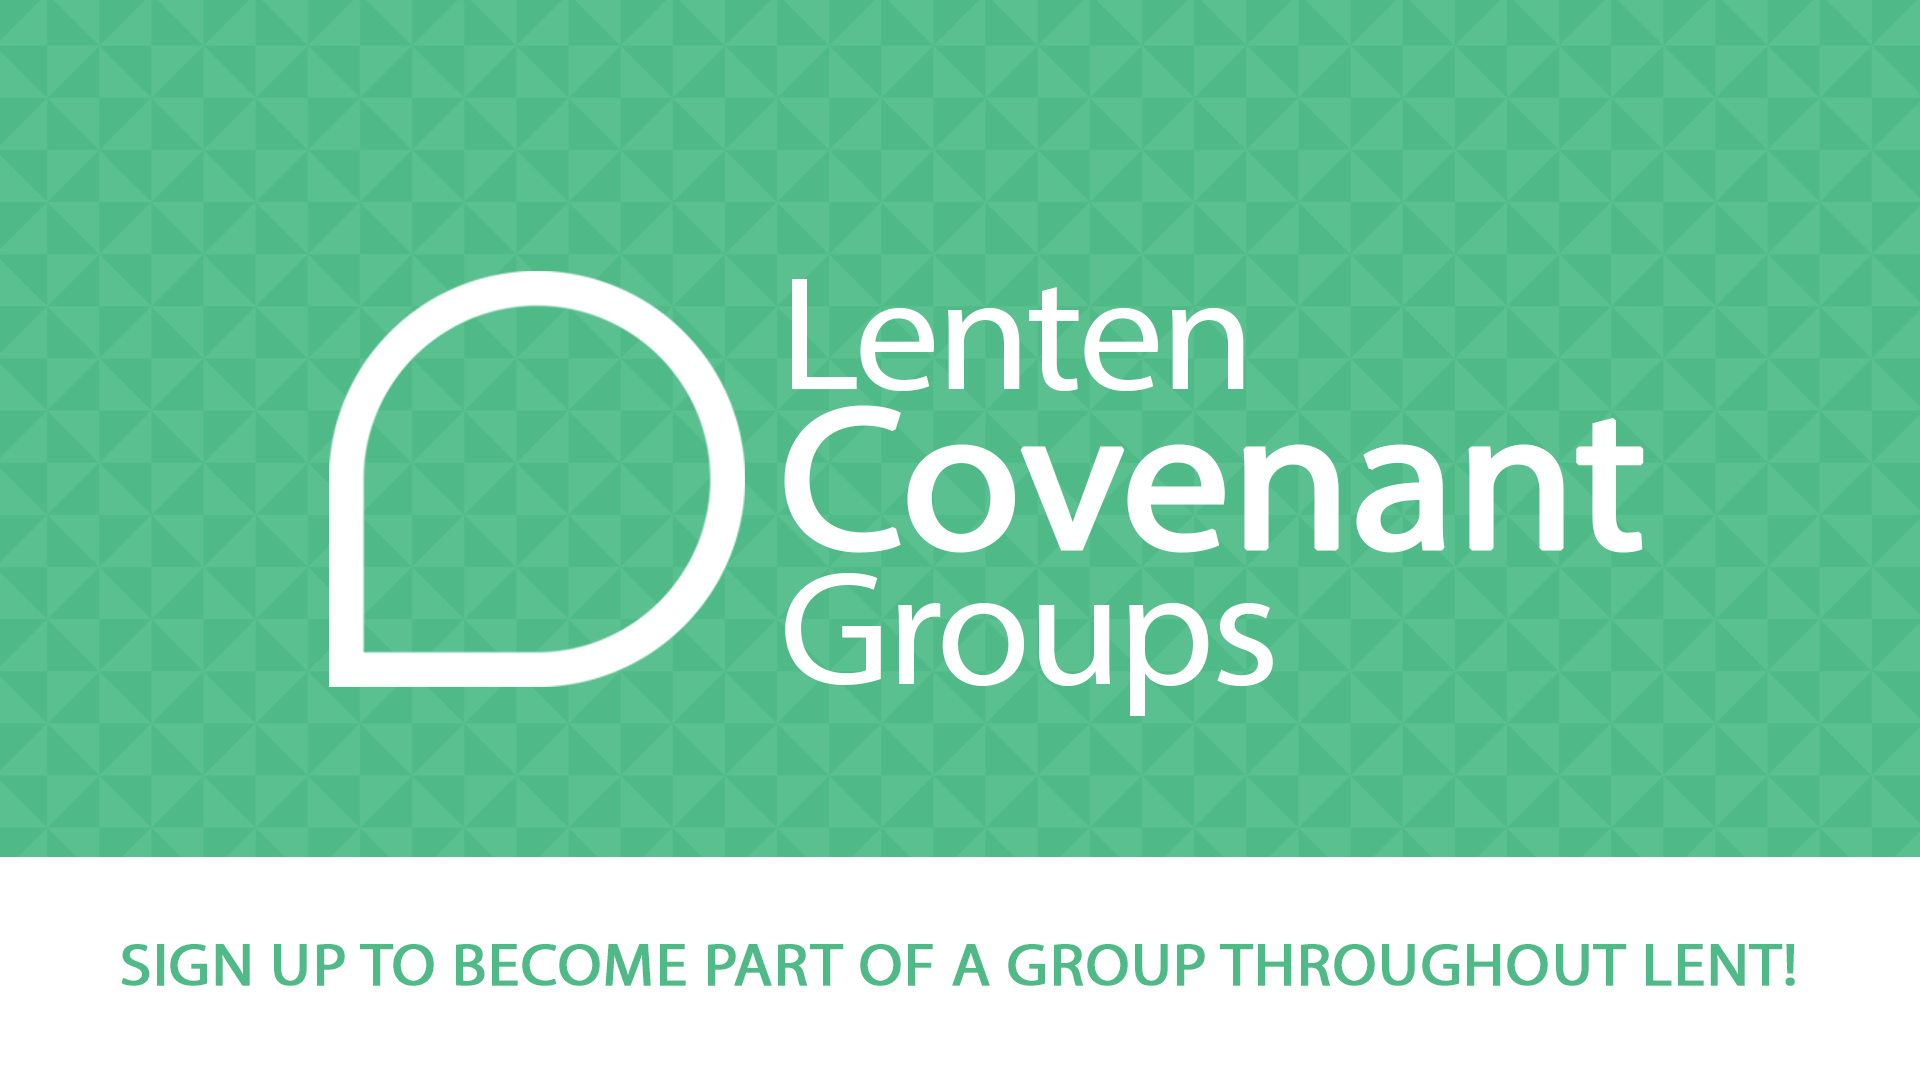 lenten covenant Group.jpg